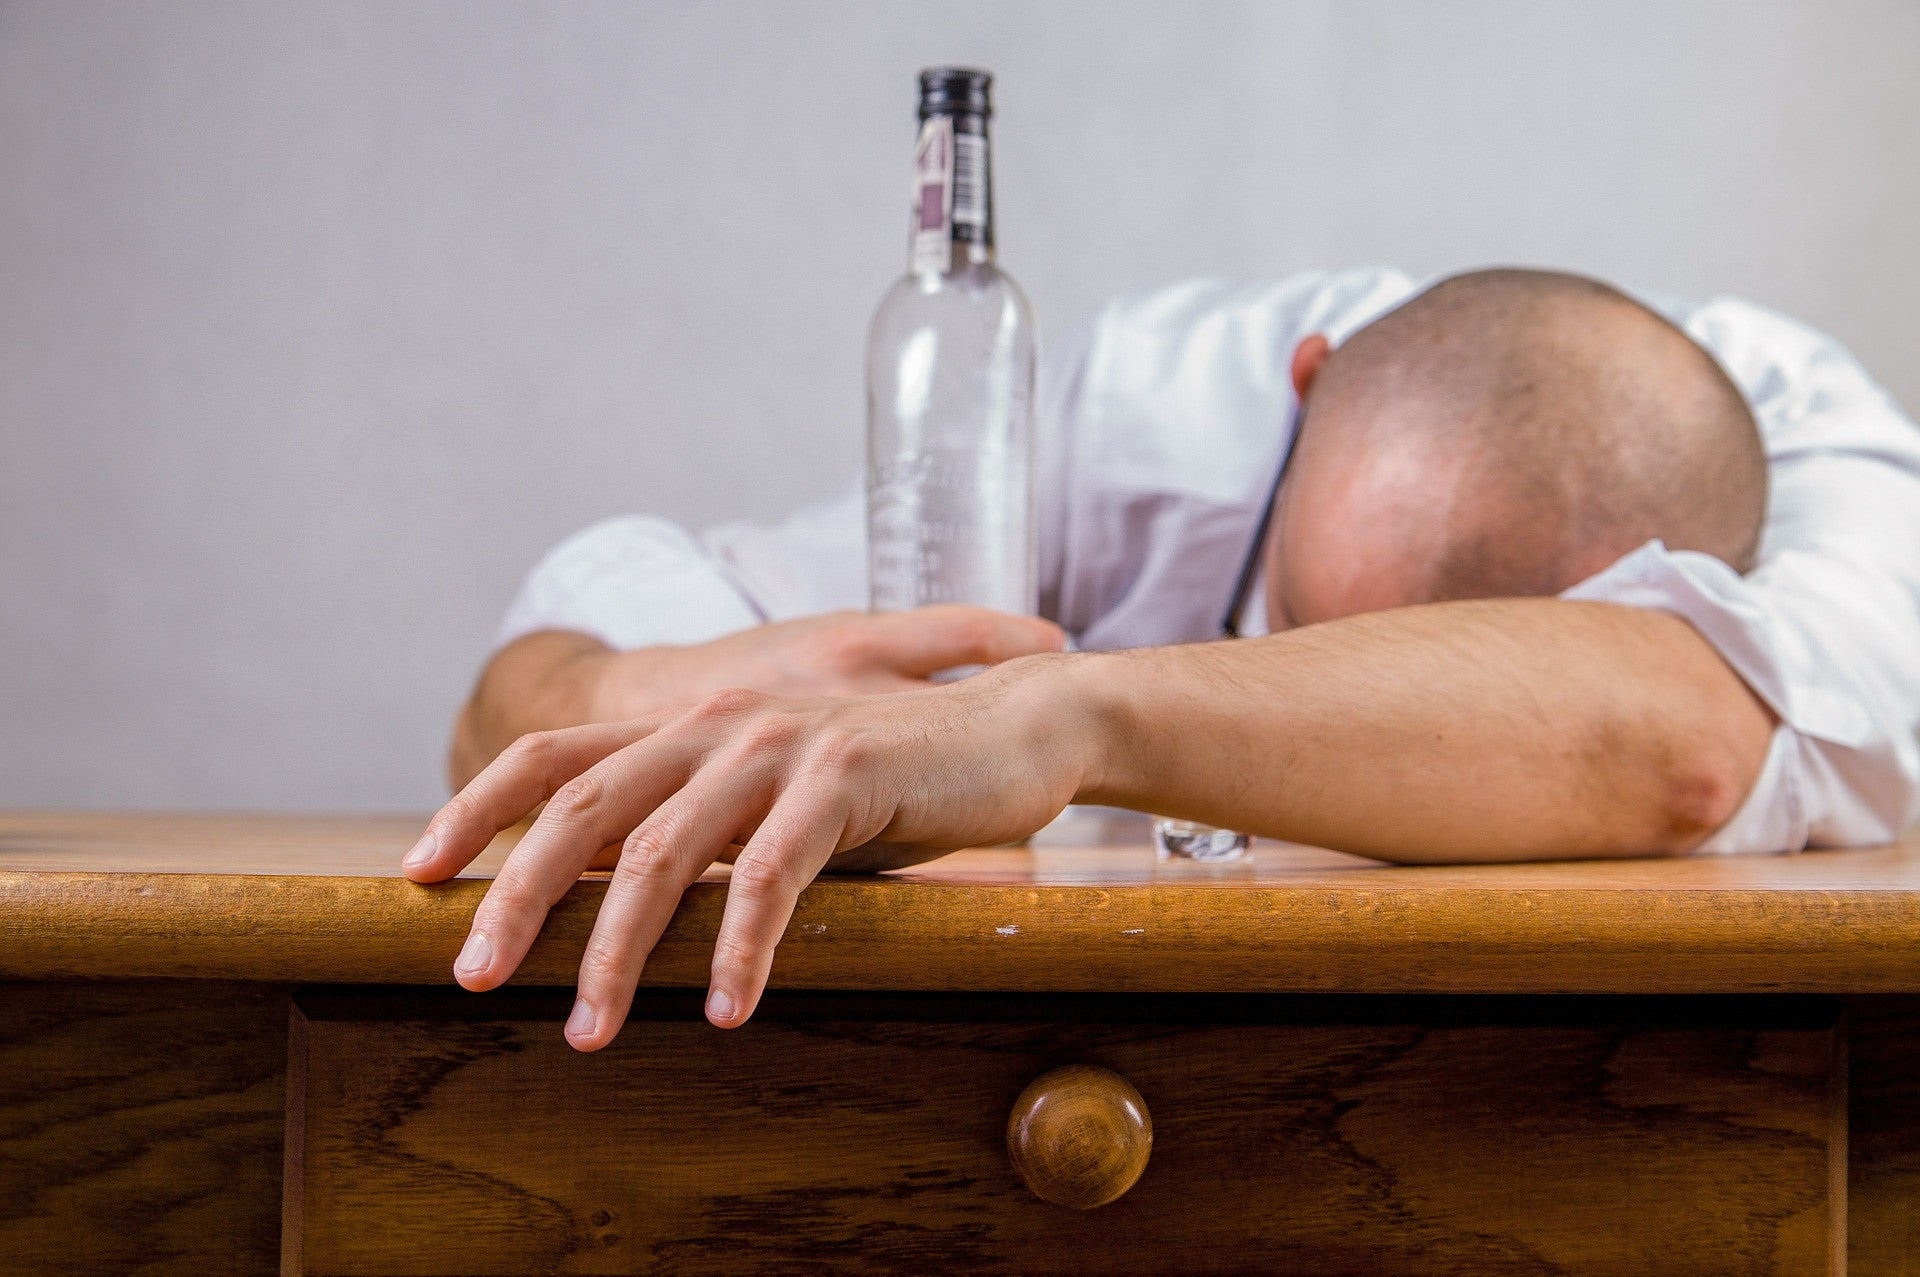 4 Tricks for Getting Rid of a Hangover